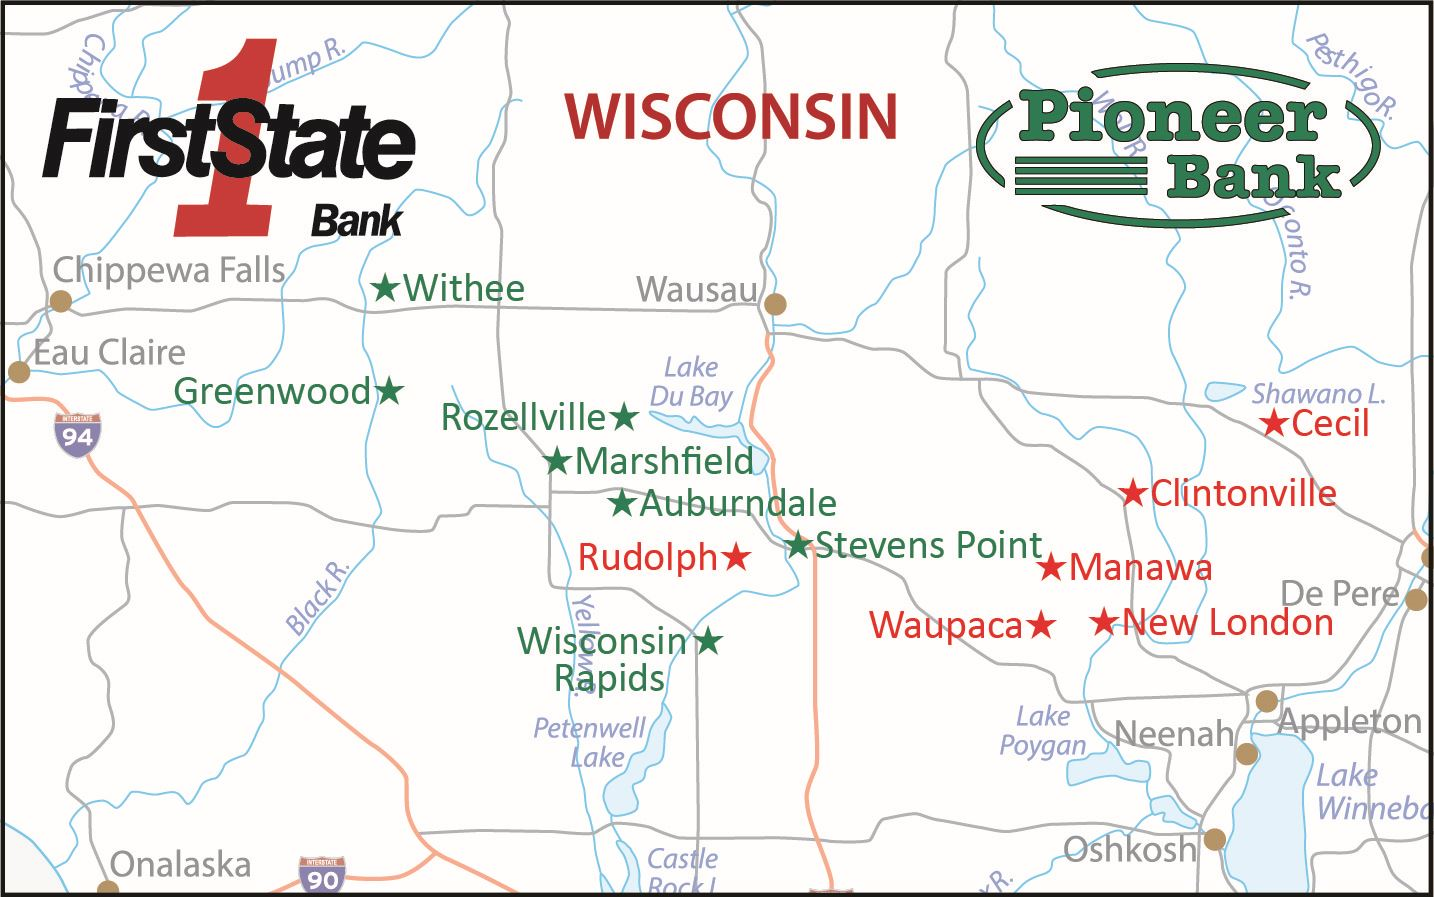 FIRST STATE BANK ANNOUNCES AGREEMENT TO ACQUIRE PIONEER BANK